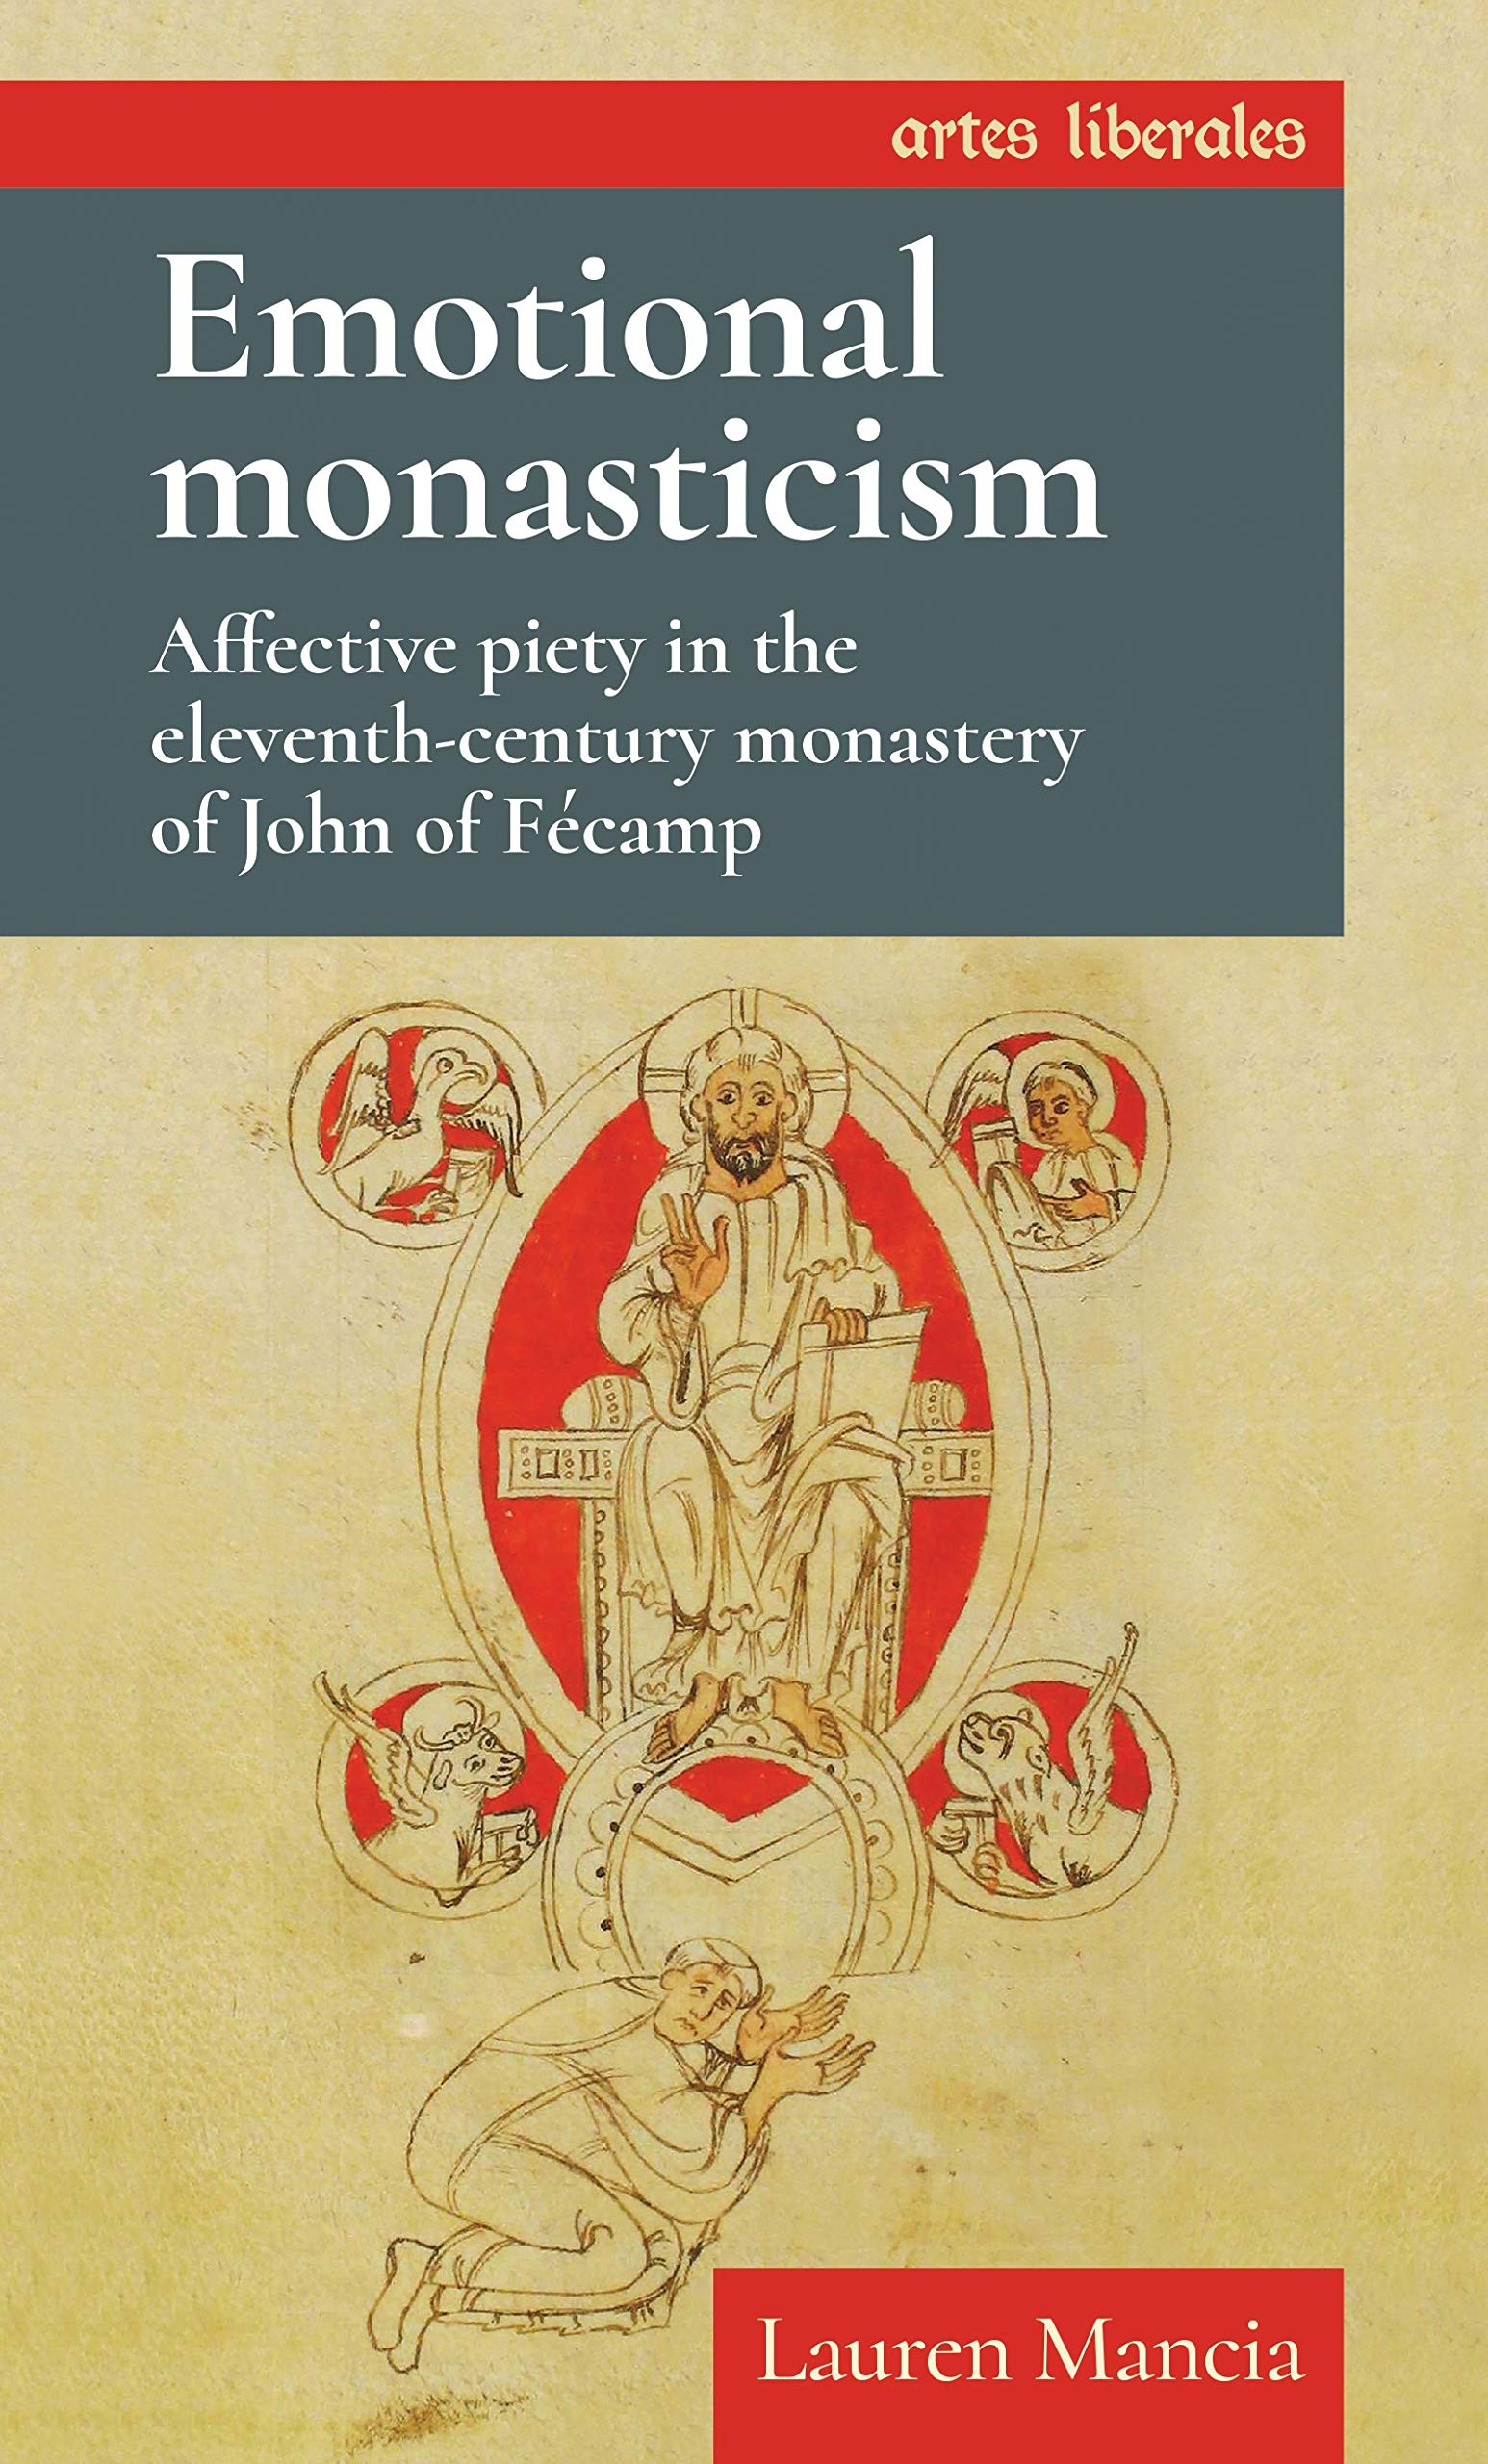 cover of Lauren Mancia	Emotional monasticism: Affective piety in the eleventh-century monastery of John of Fécamp. Manchester University Press, 2019.	BX2615.F36 M36 2019